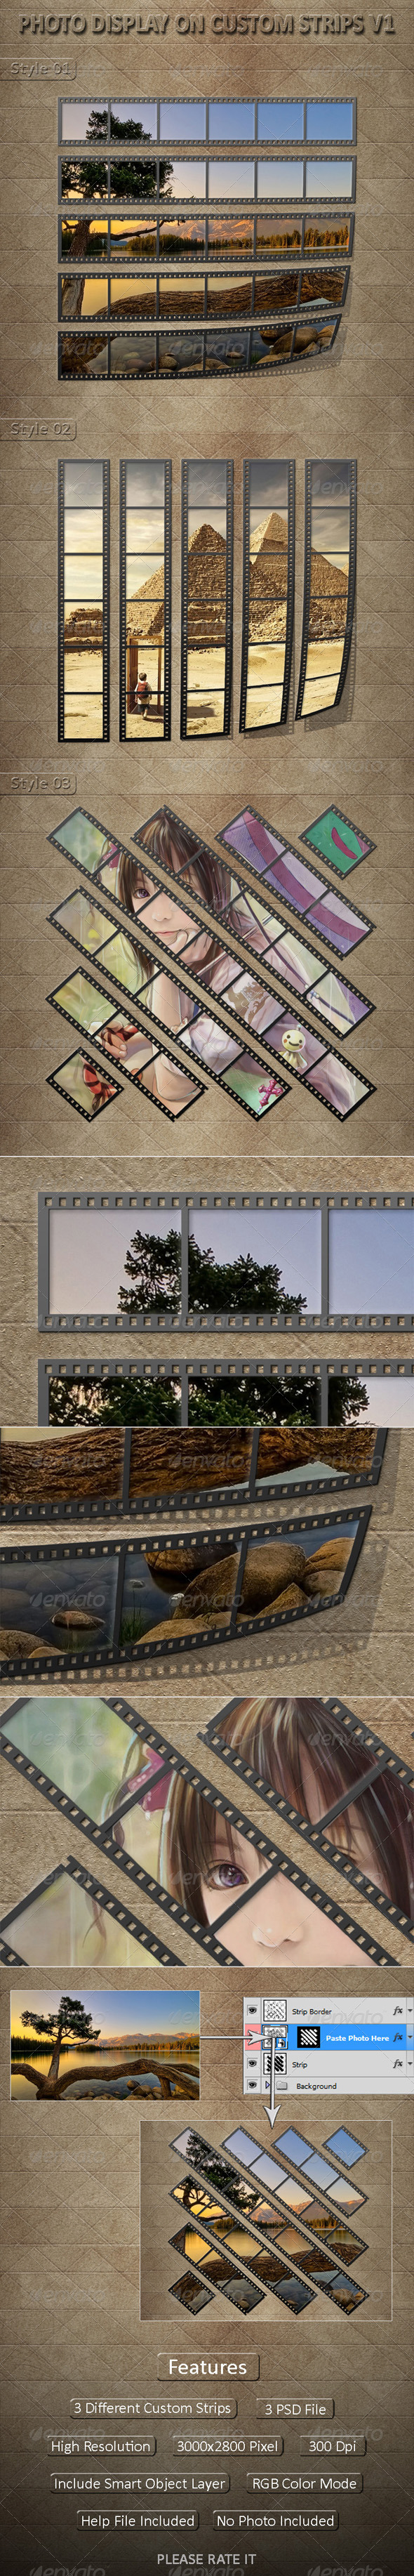 Photo Display on Custom Strips V1